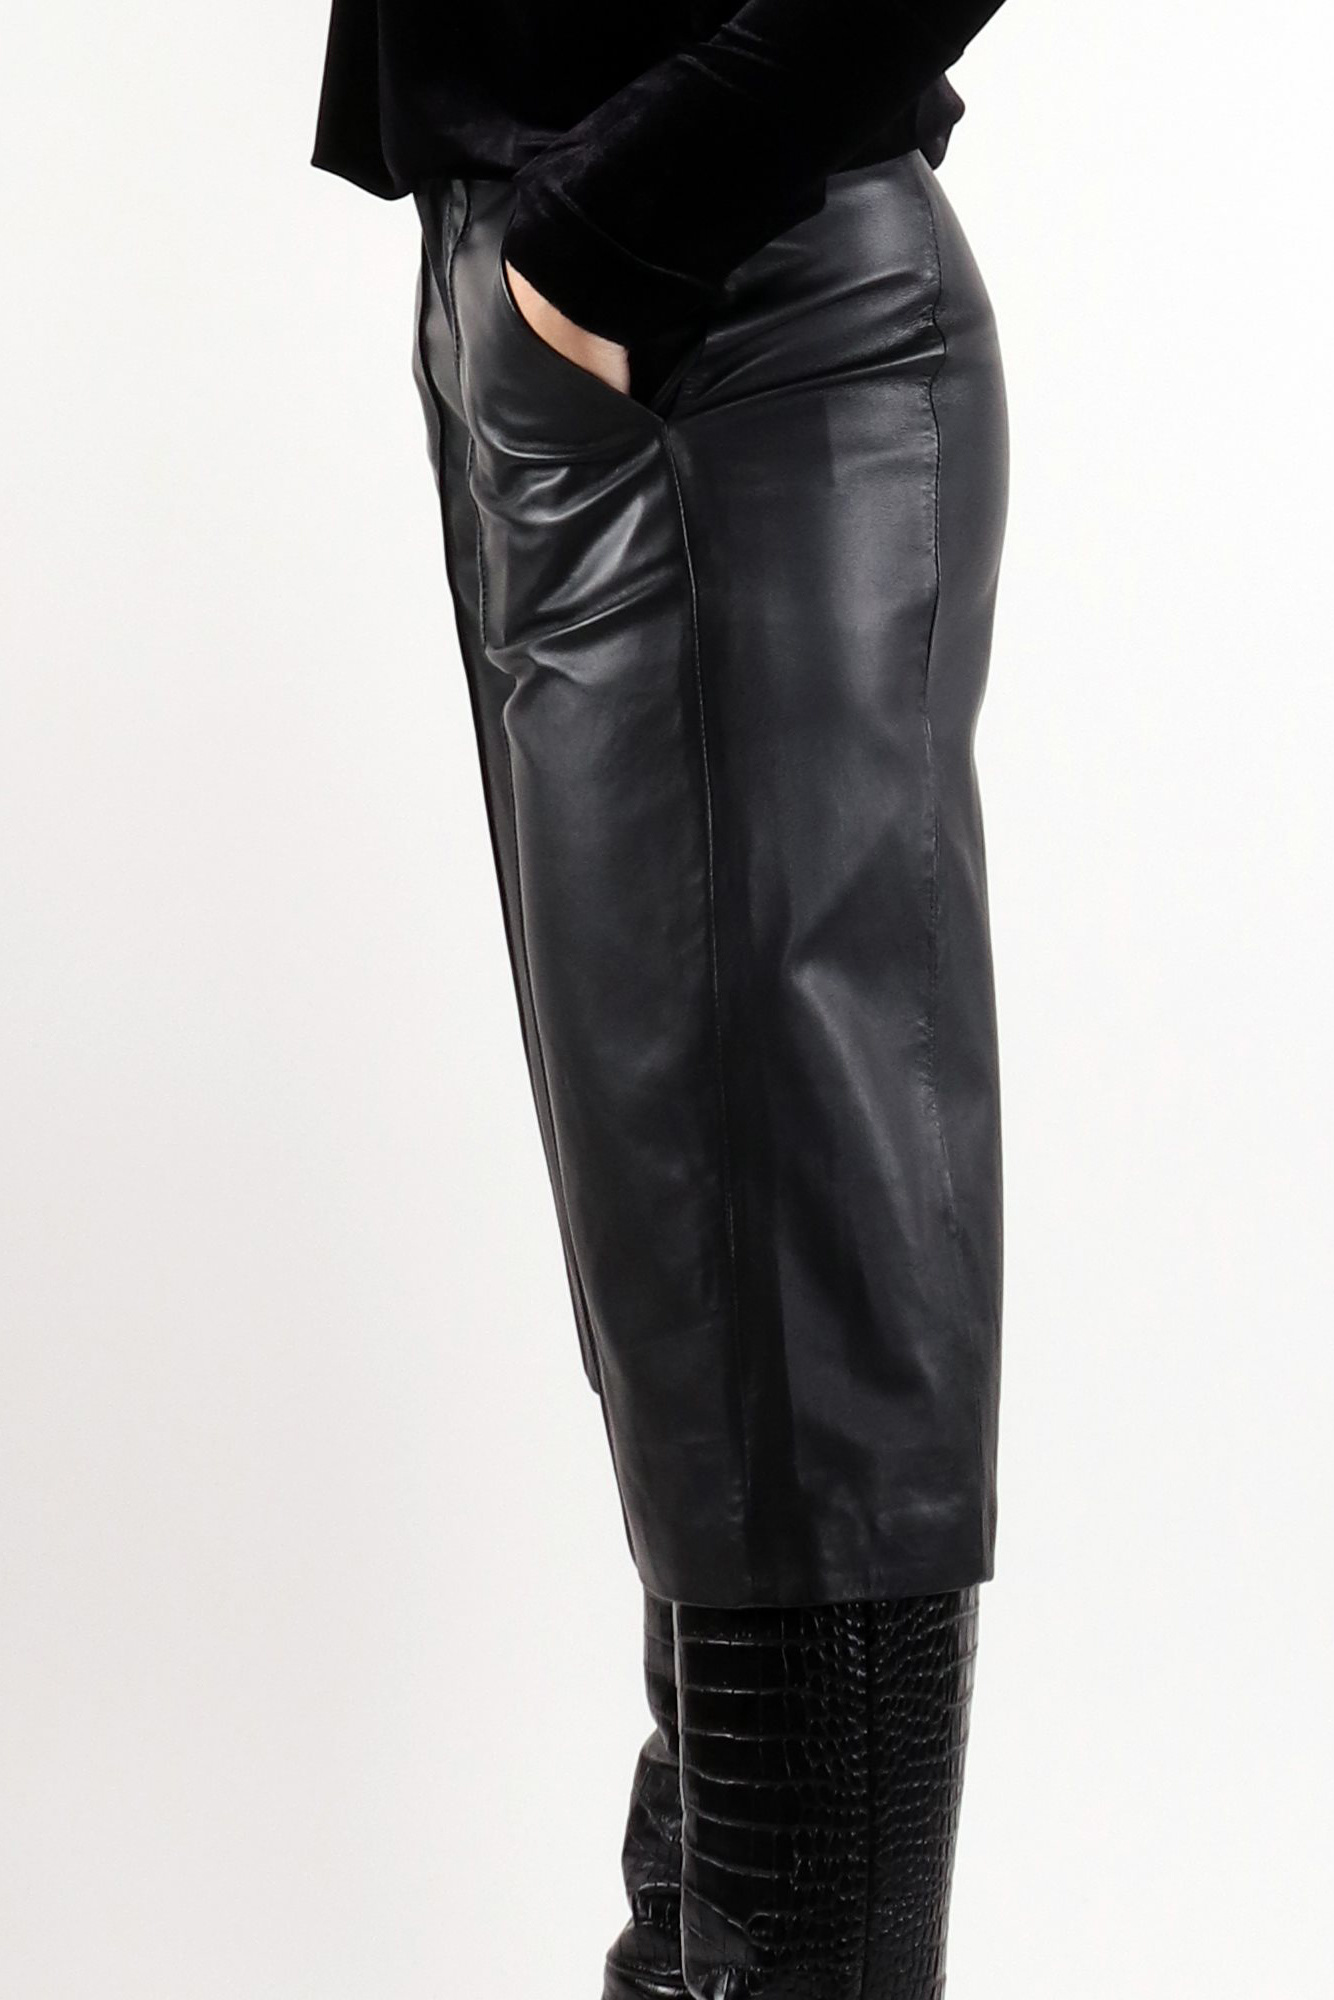 Palma Leather Culotte - Black-3